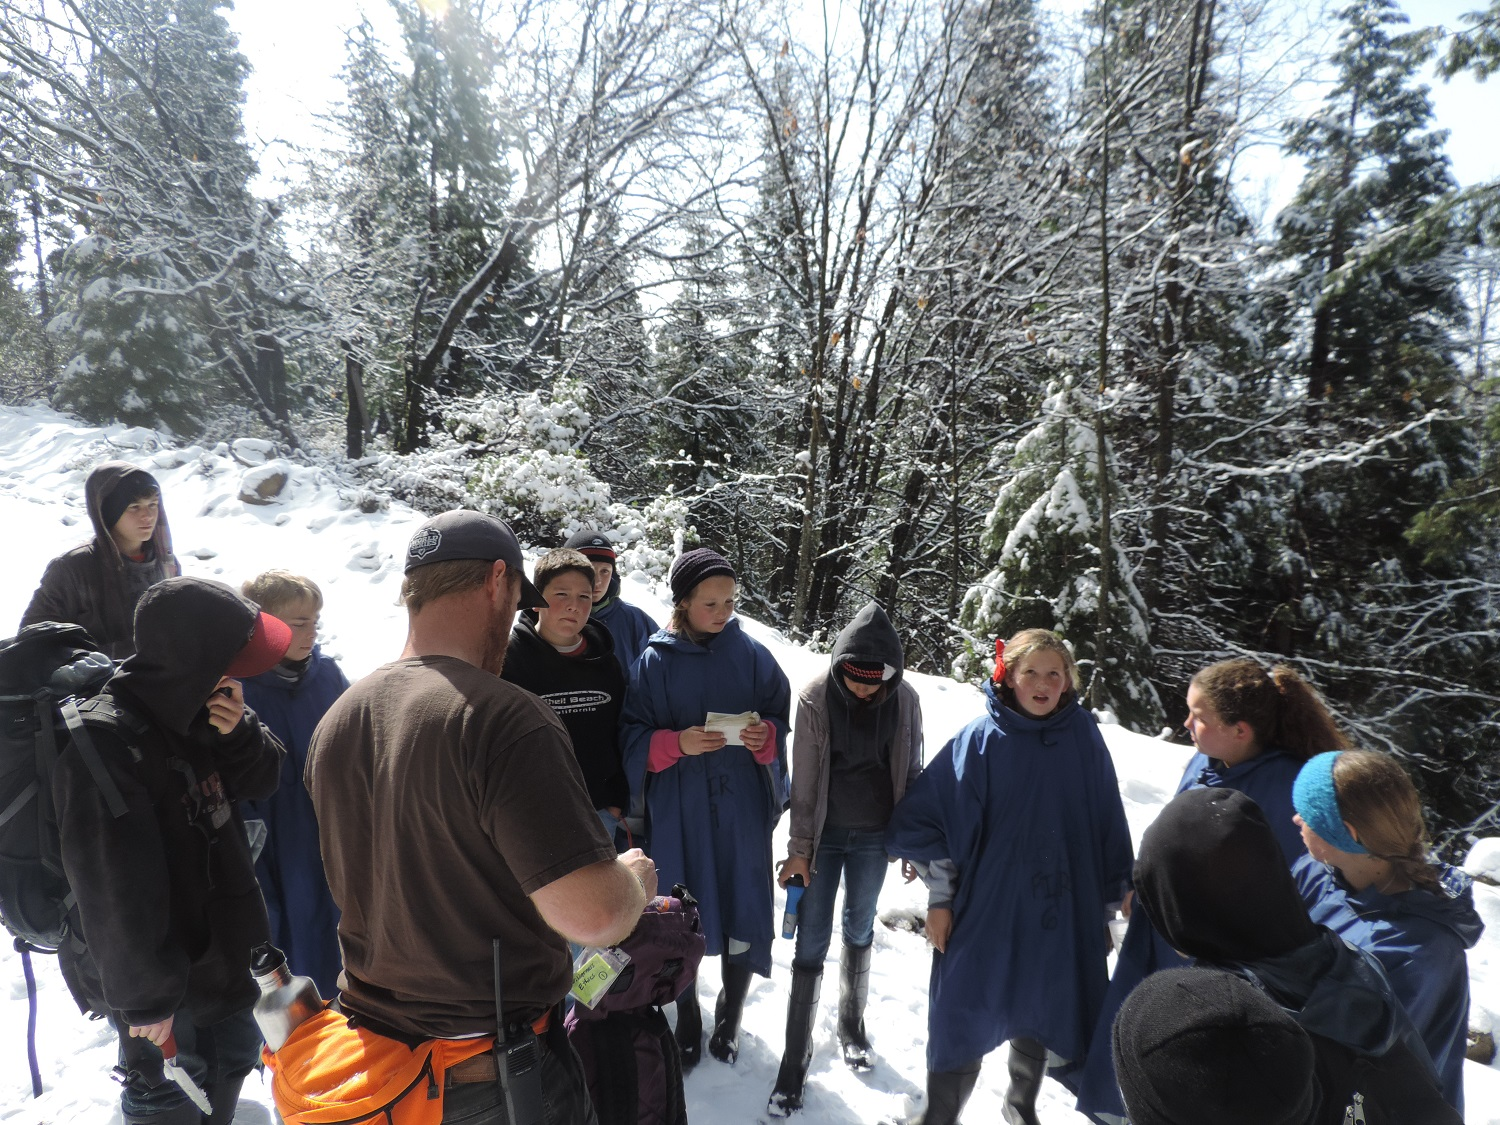 Green Meadows 2014 - kids work with counselors out in the snow - photos courtesy of Ronda Clarke